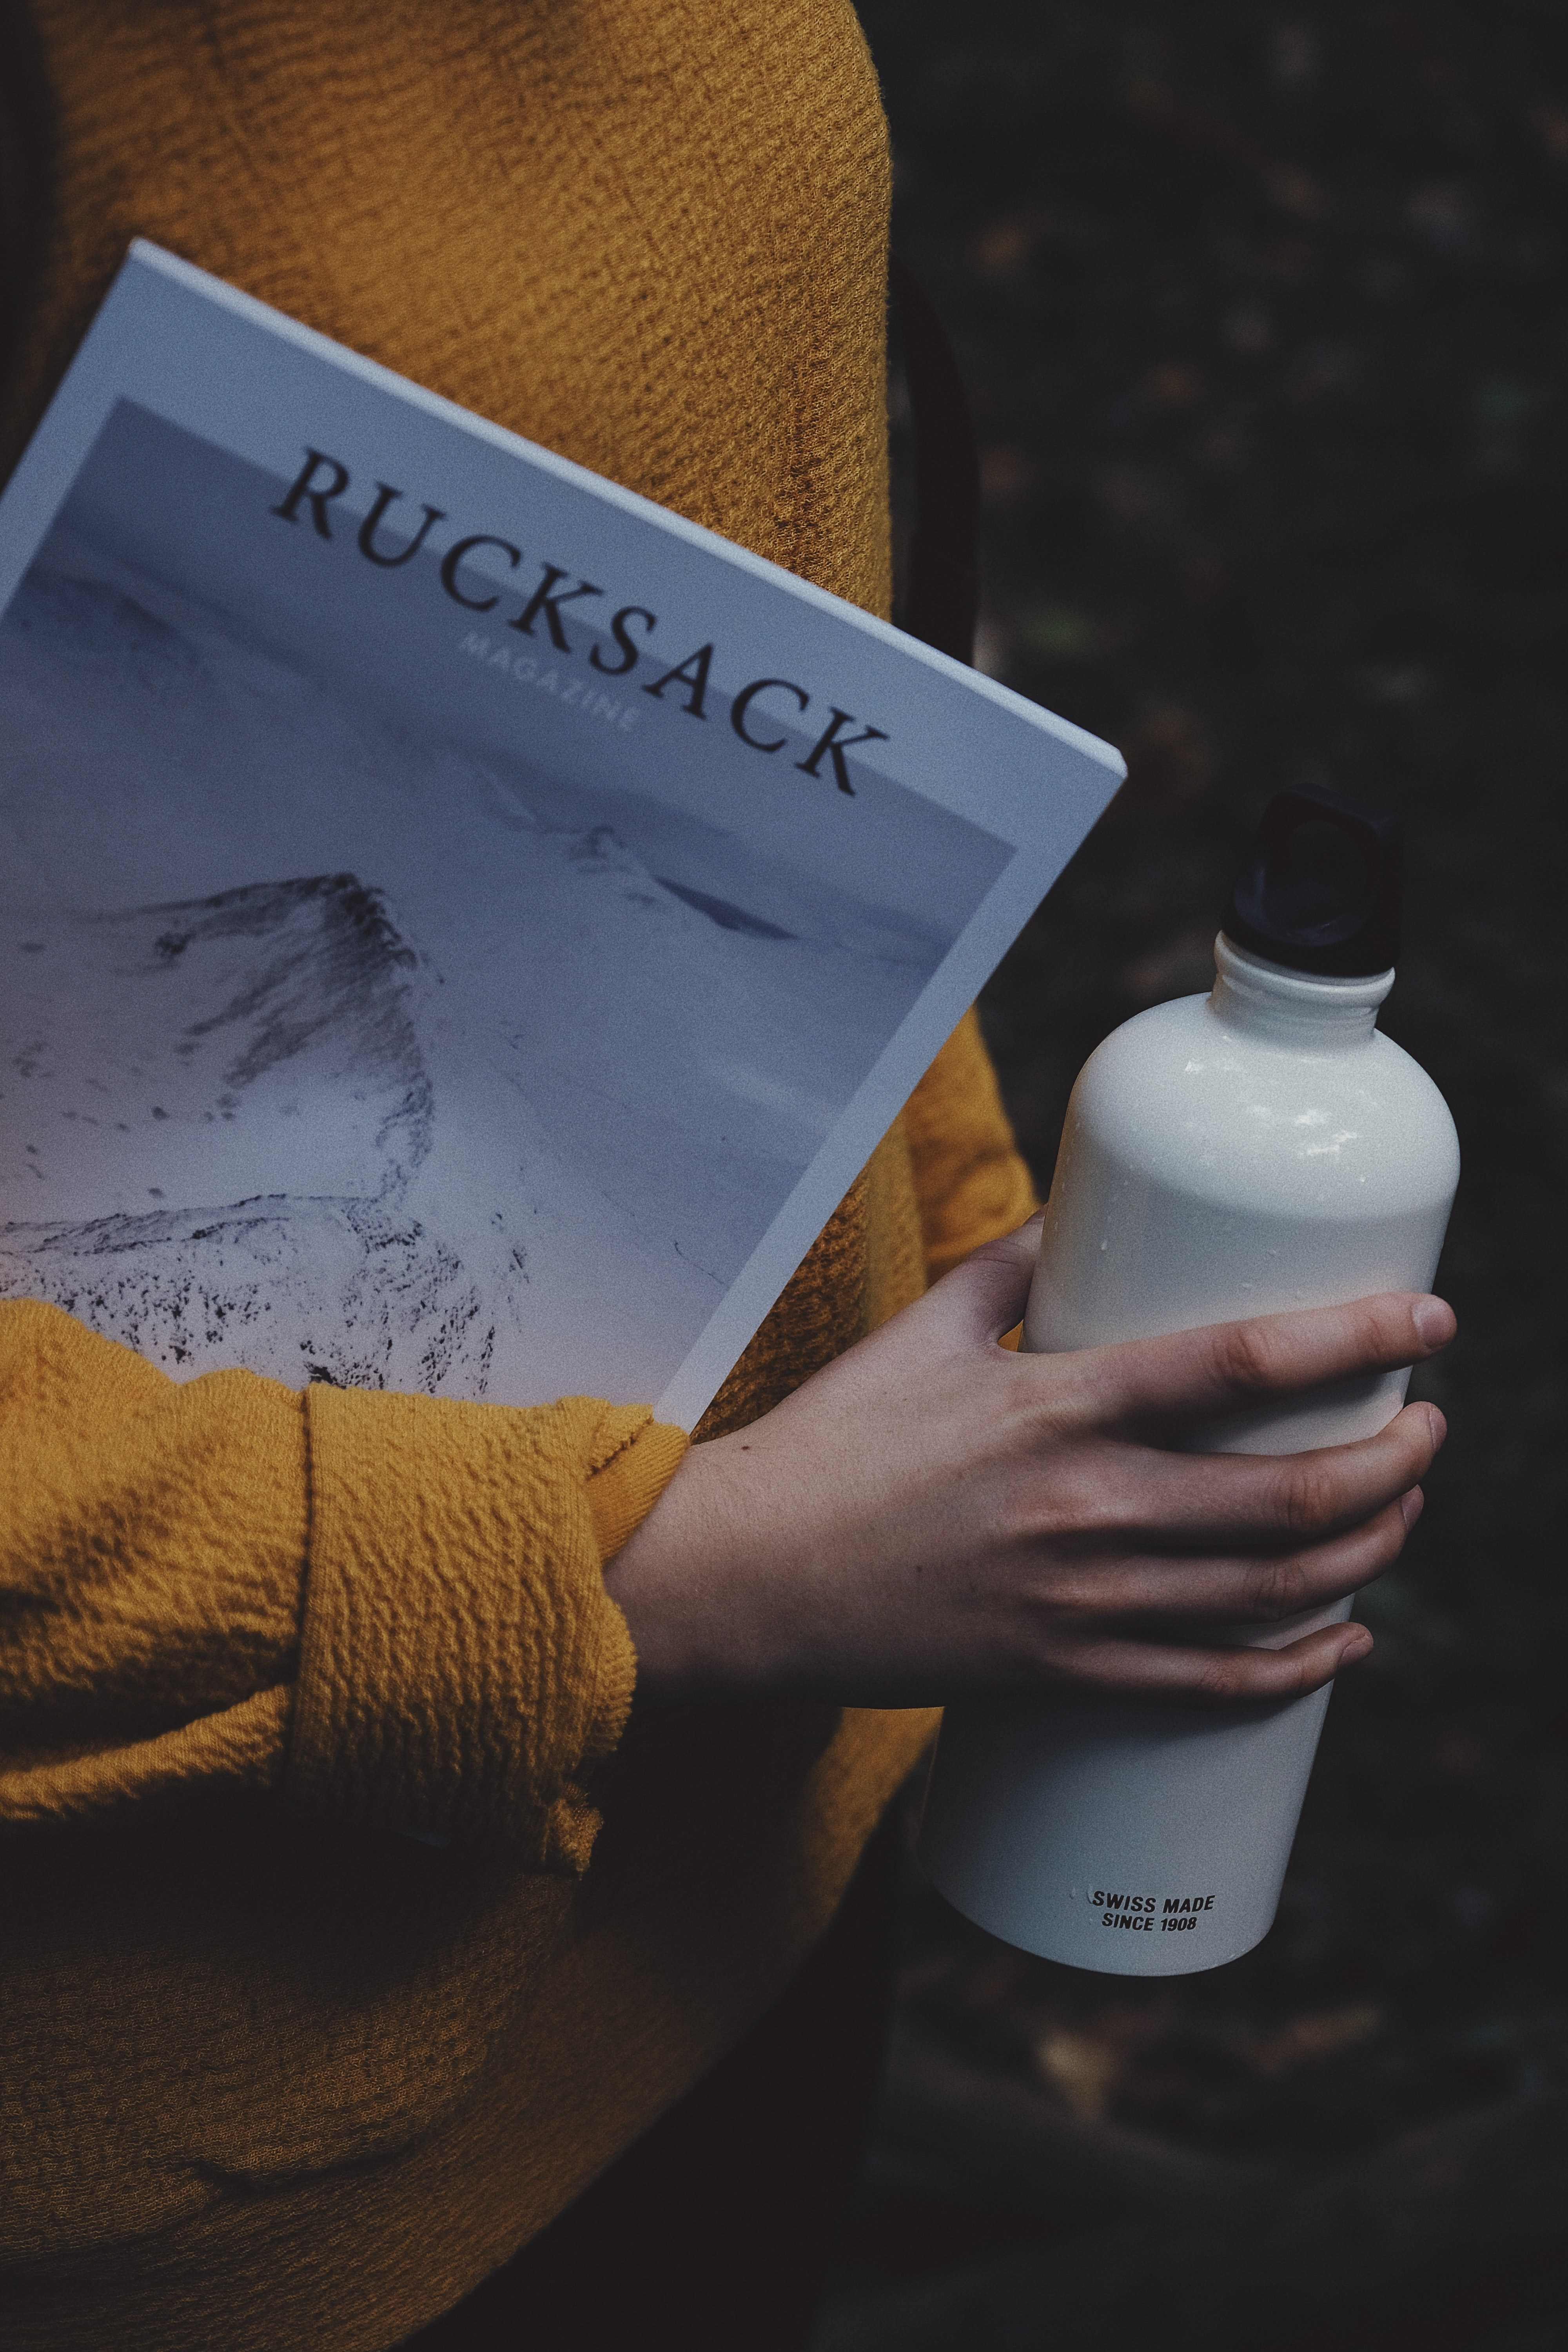 person holding white tumbler and a Rucksack magazine in between arm